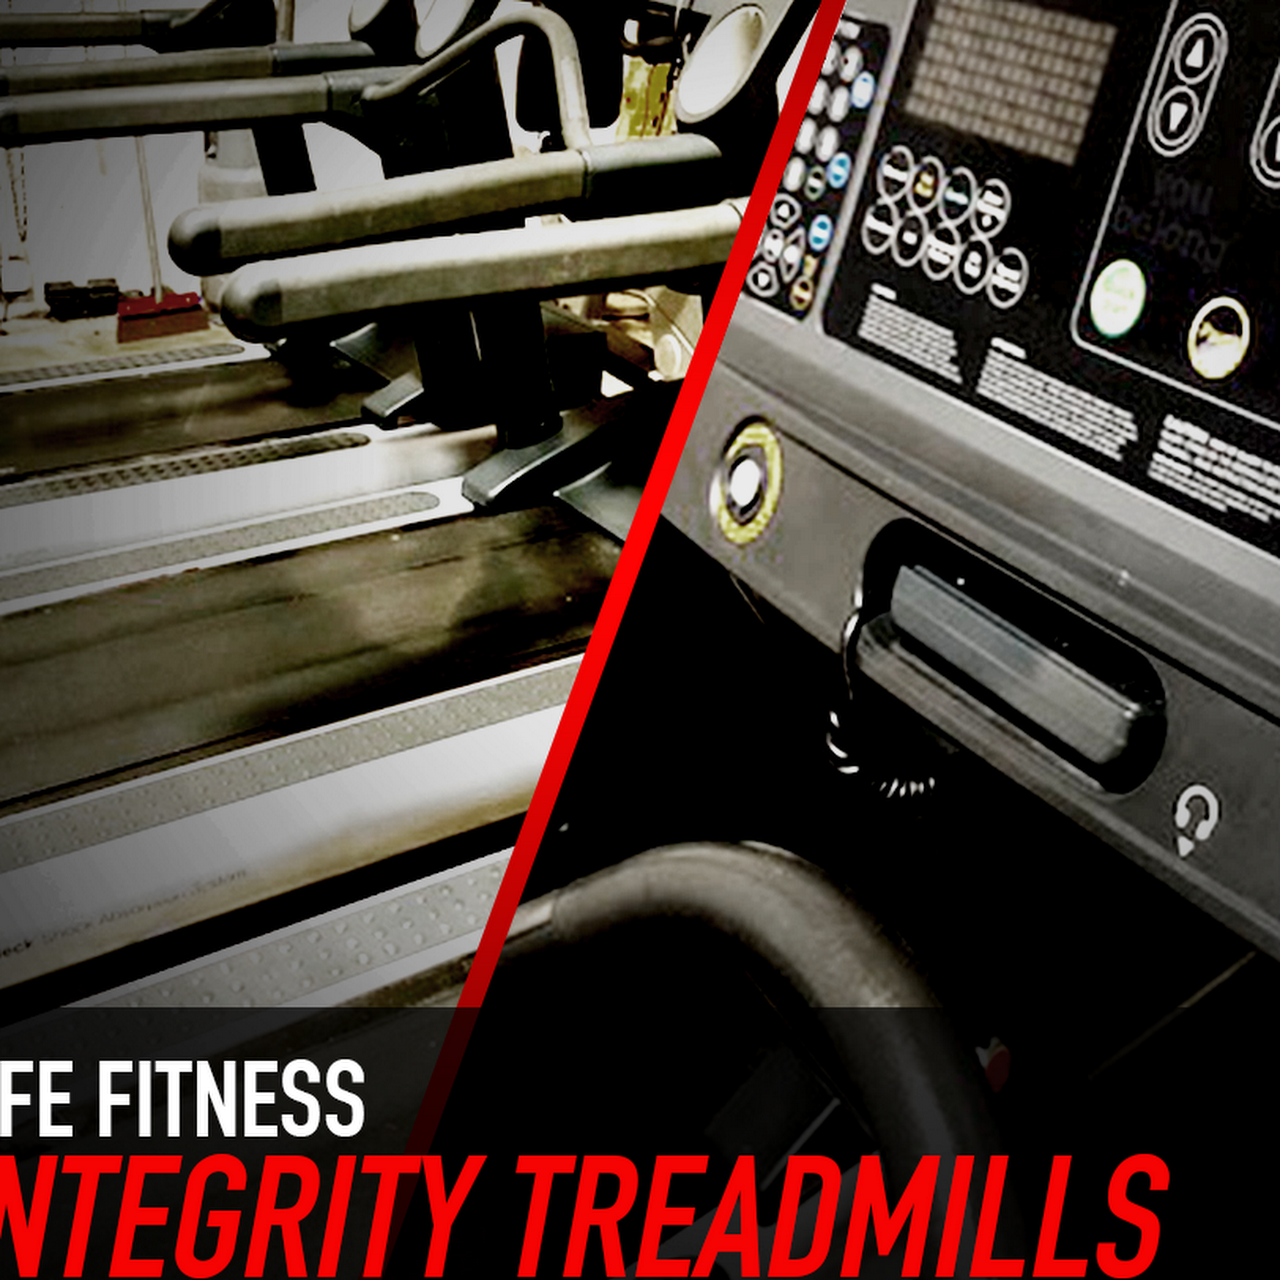 Fitness Services of Florida, Inc  - Fitness Equipment